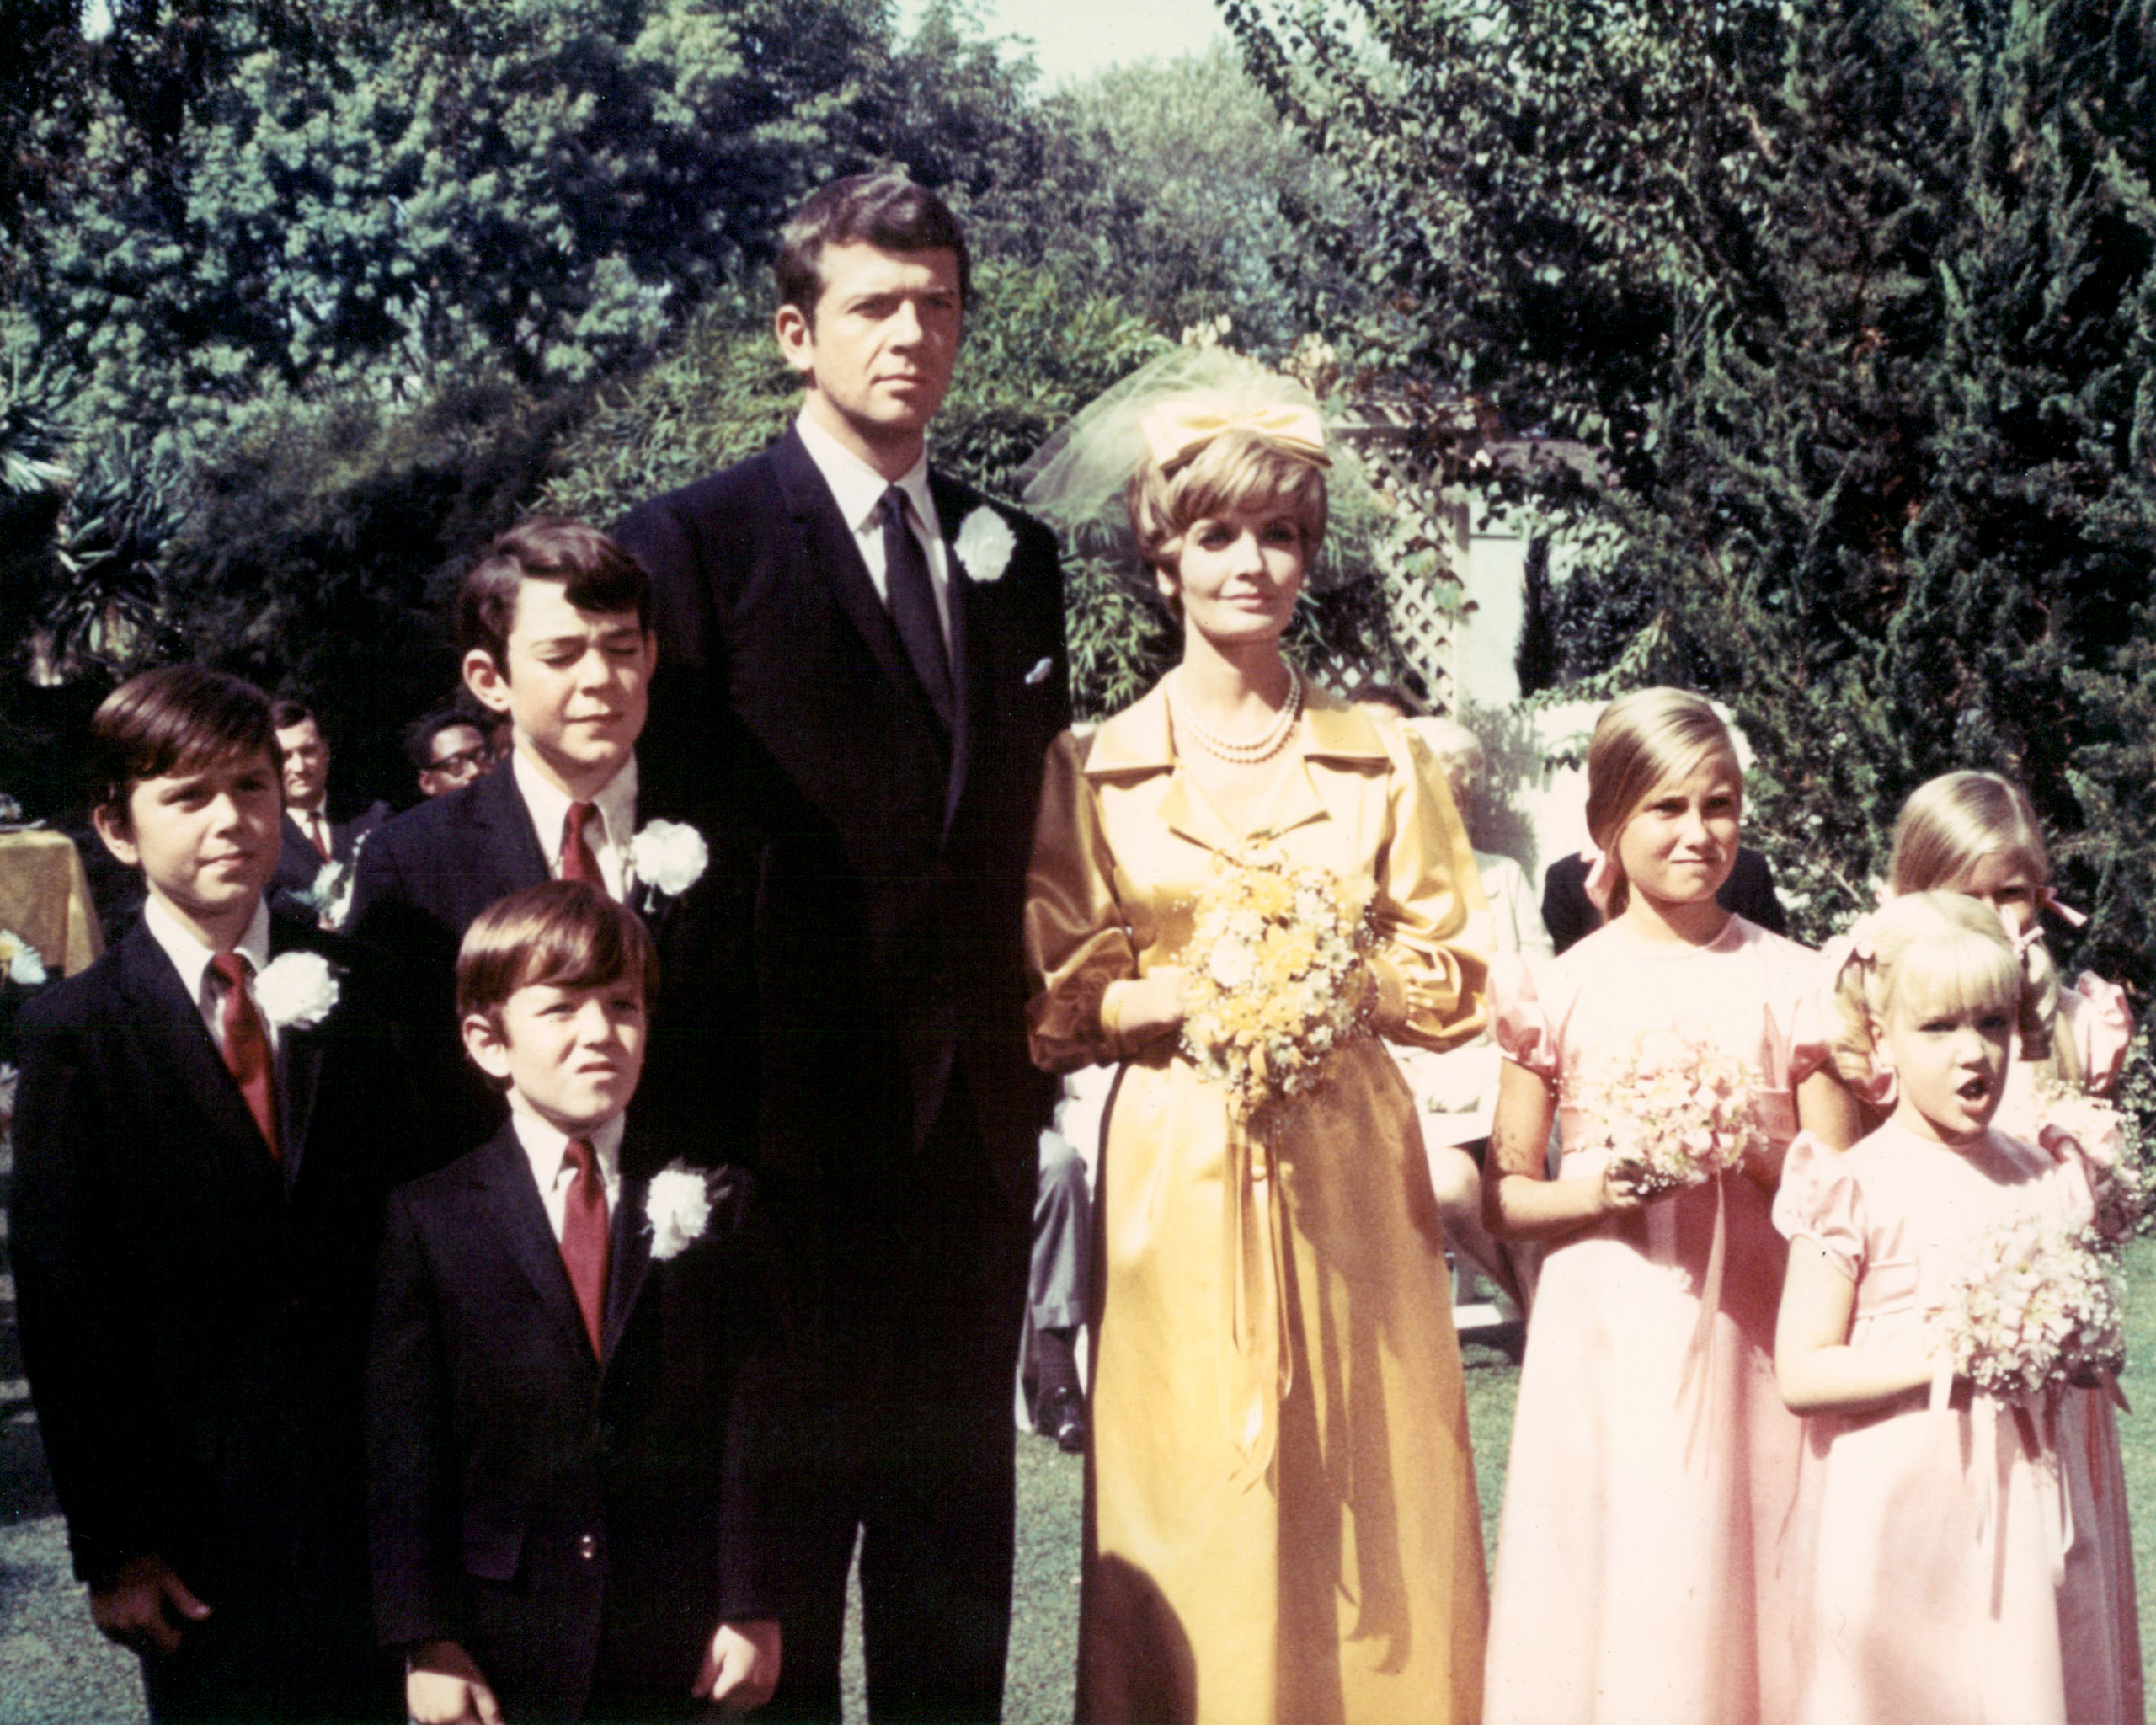 Barry Williams, Christopher Knight, Mike Lookinland, Robert Reed, Florence Henderson, Maureen McCormick, Eve Plumb, and Susan Olsen pose in a group portrait at a wedding in a publicity image issued for the US television series,  The Brady Bunch,  in 1969.